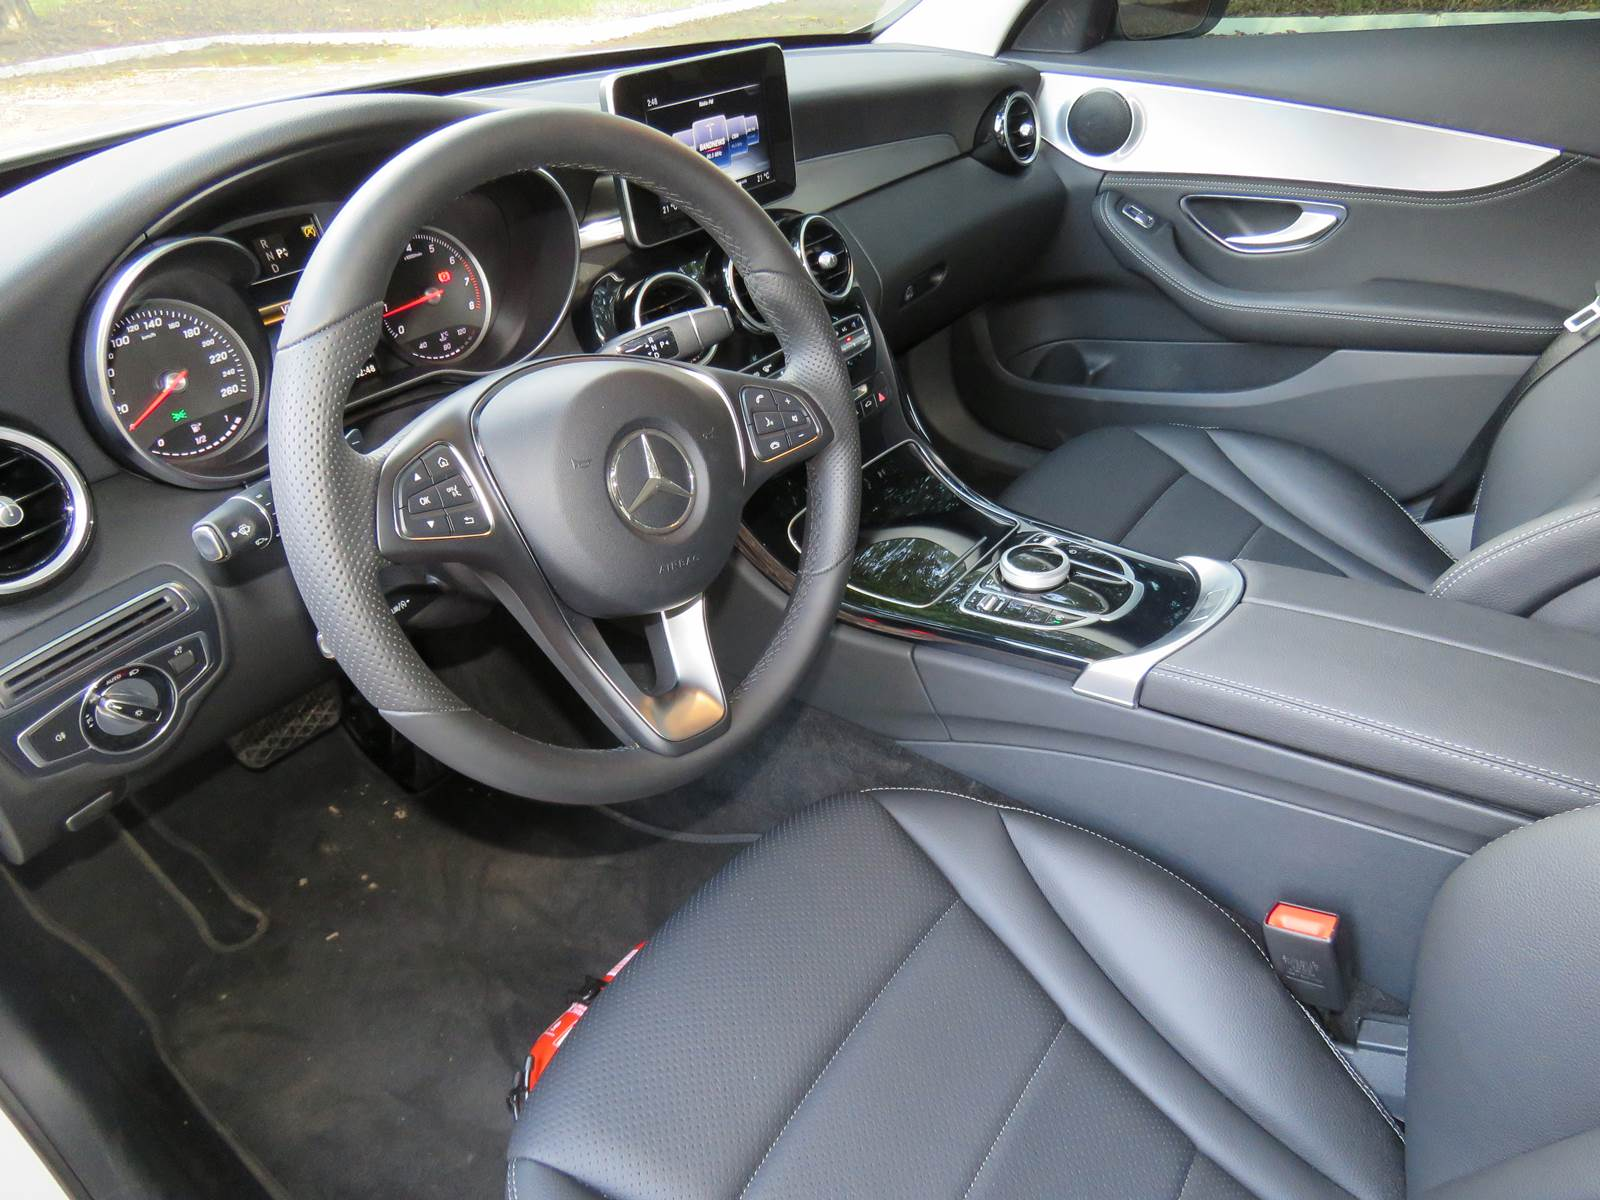 Mercedes-Benz C 180 2016 - interior